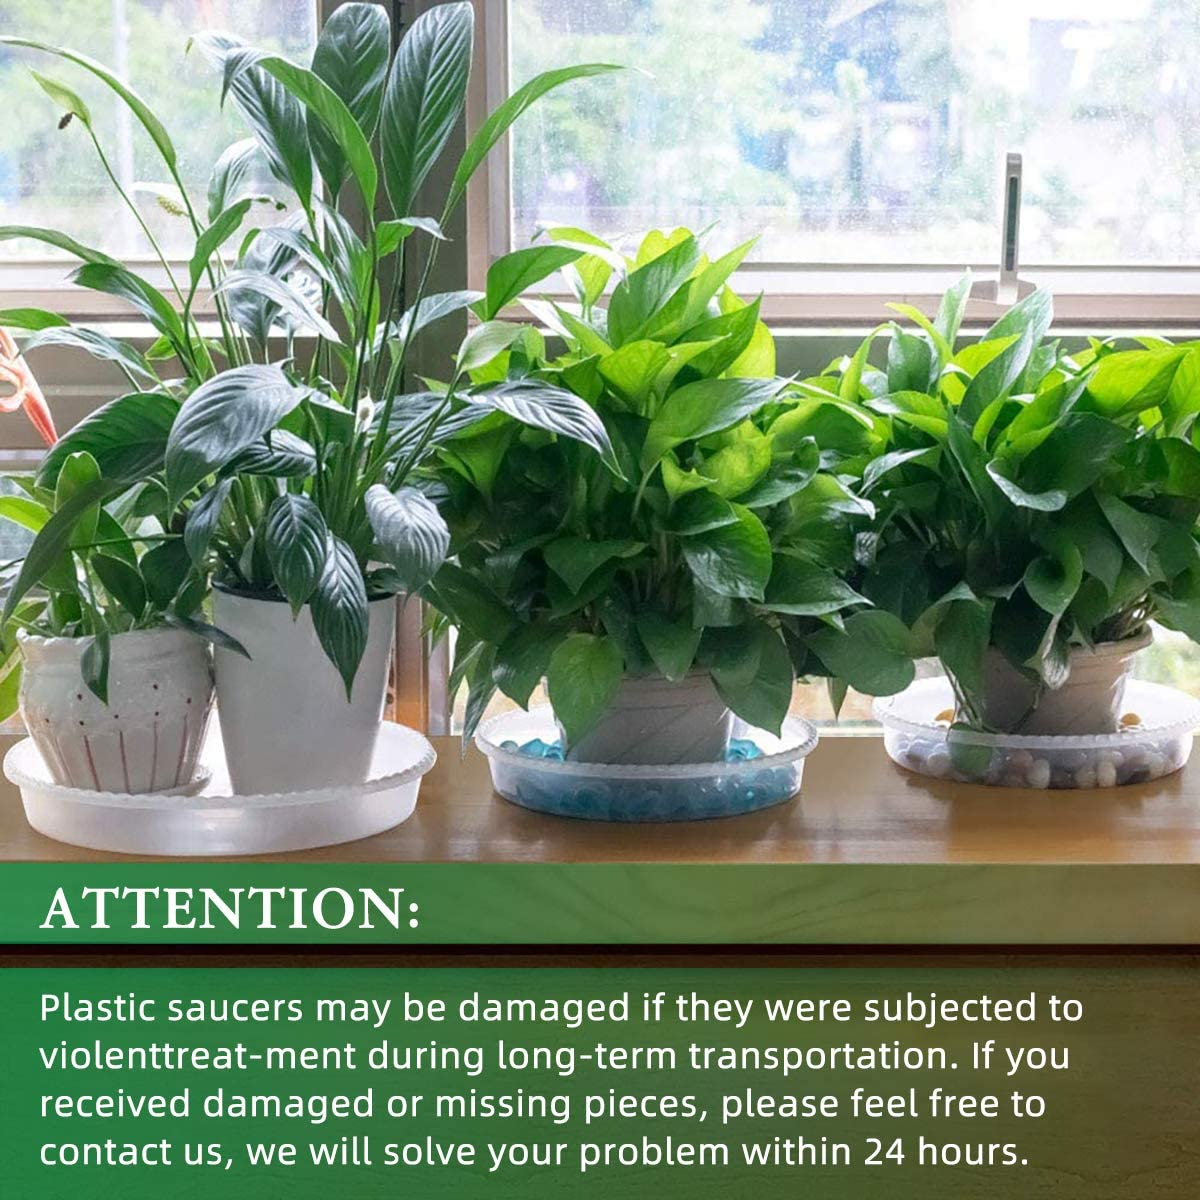 HomeMall 5 PCS Clear Plant Saucer Durable Plastic Plant Tray for Flower Pots Sturdy Drip Trays for Indoor and Outdoor Plants 8 inch